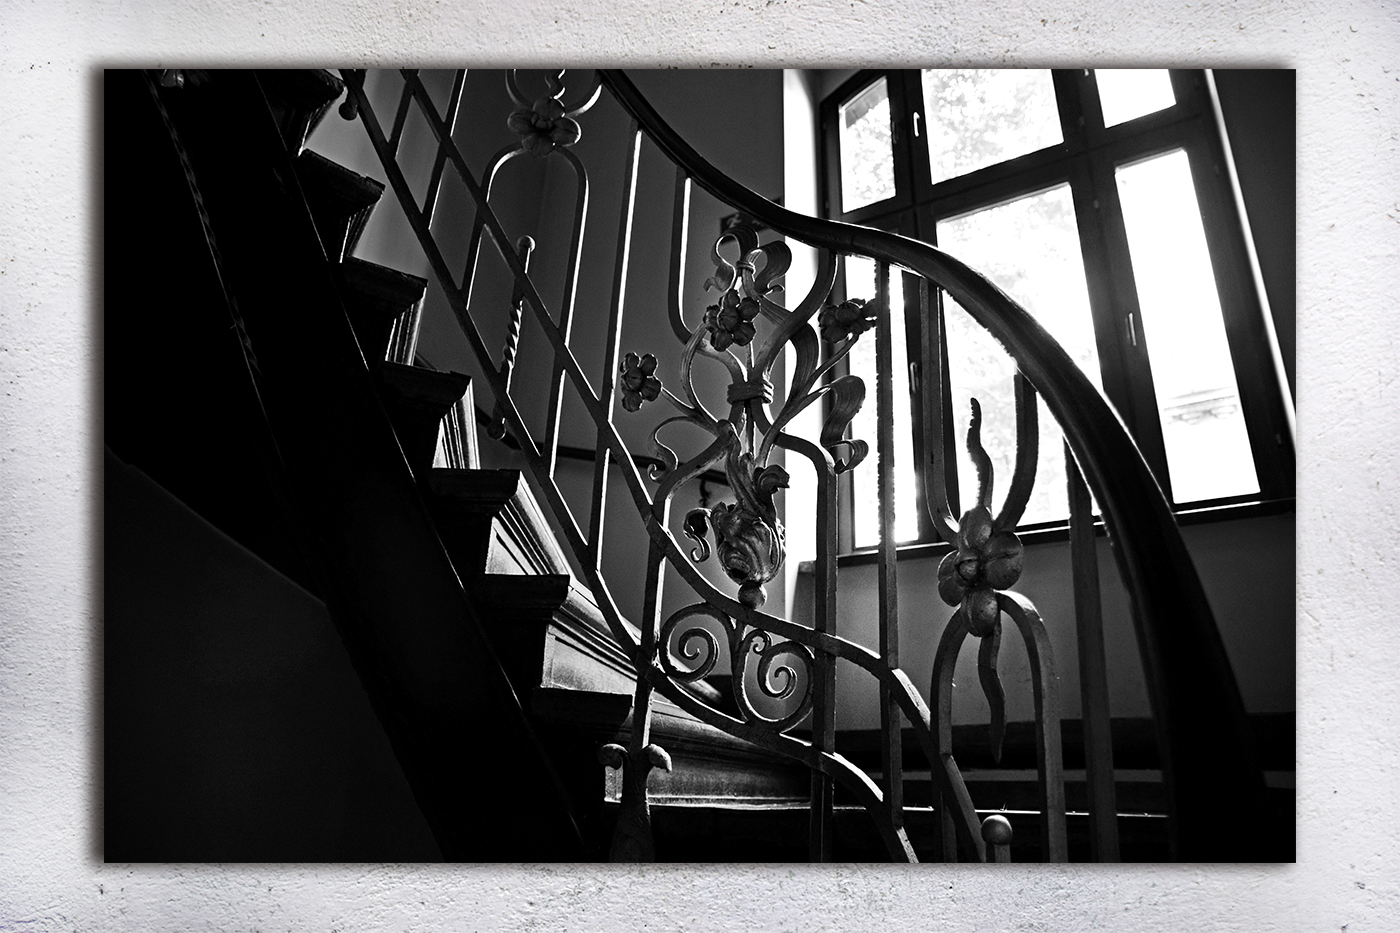 Stairs photo, architecture photo example image 2